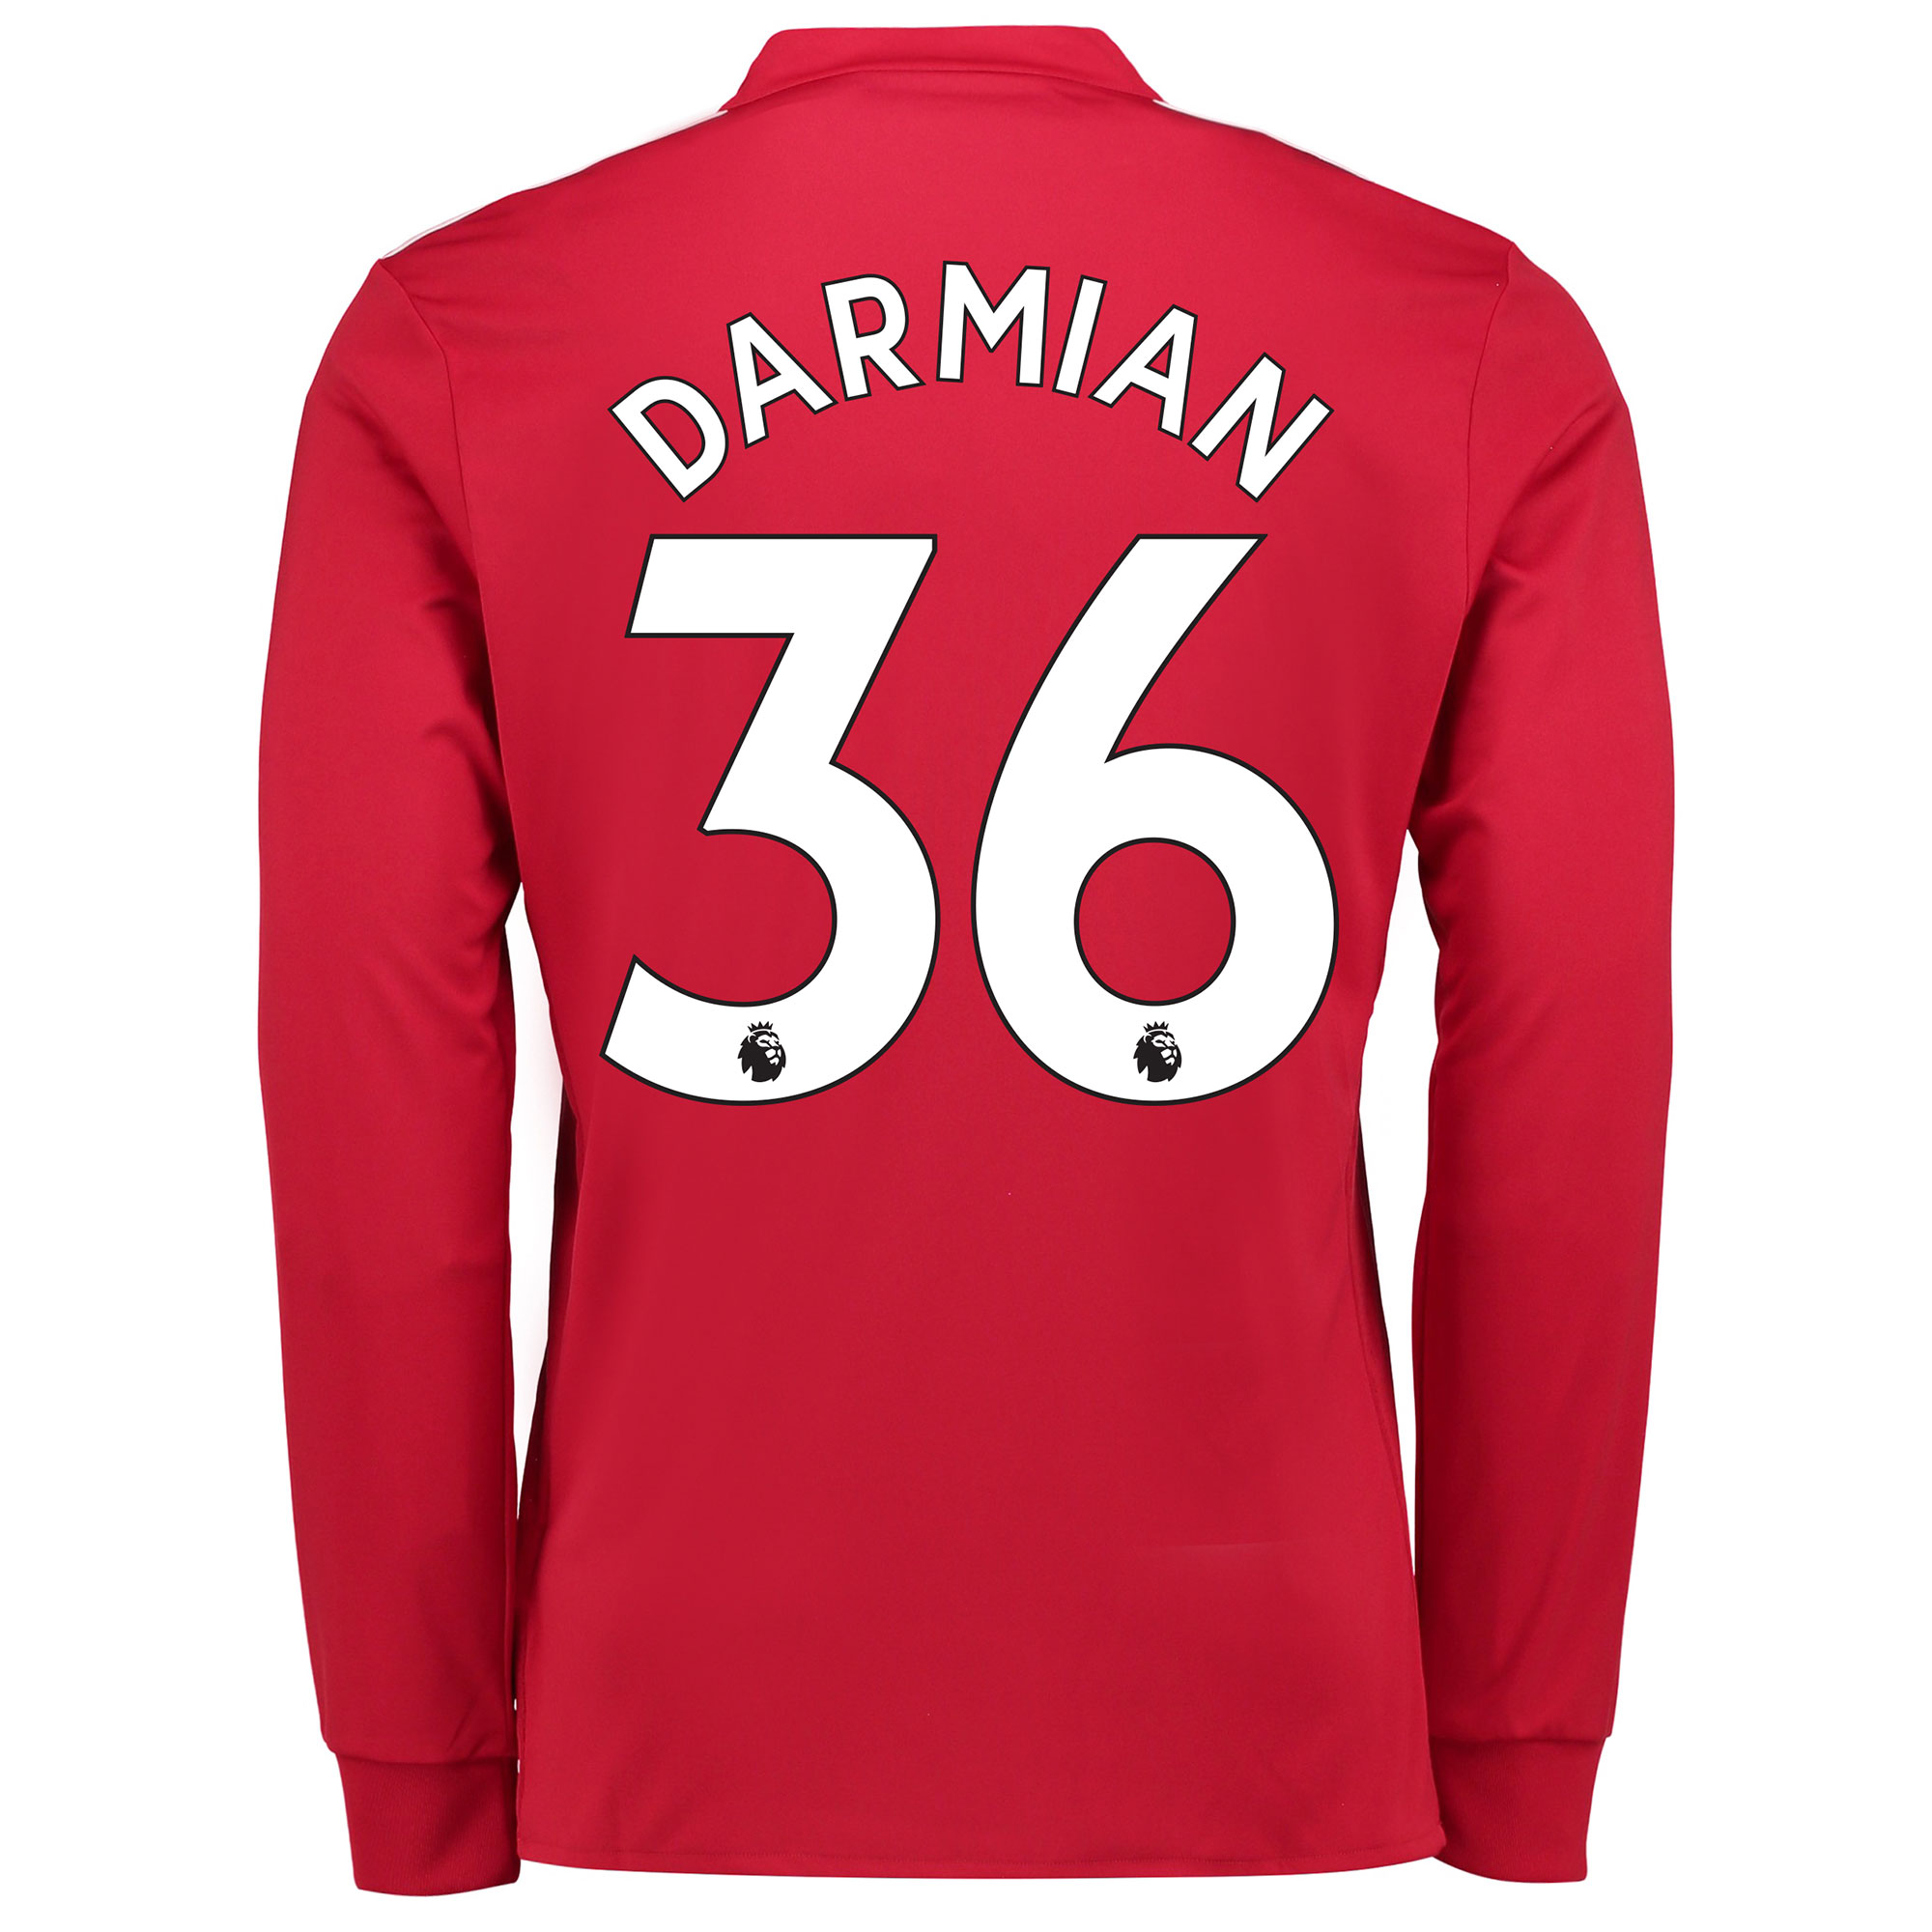 Manchester United Home Shirt 2017-18 - Long Sleeve with Darmian 36 pri